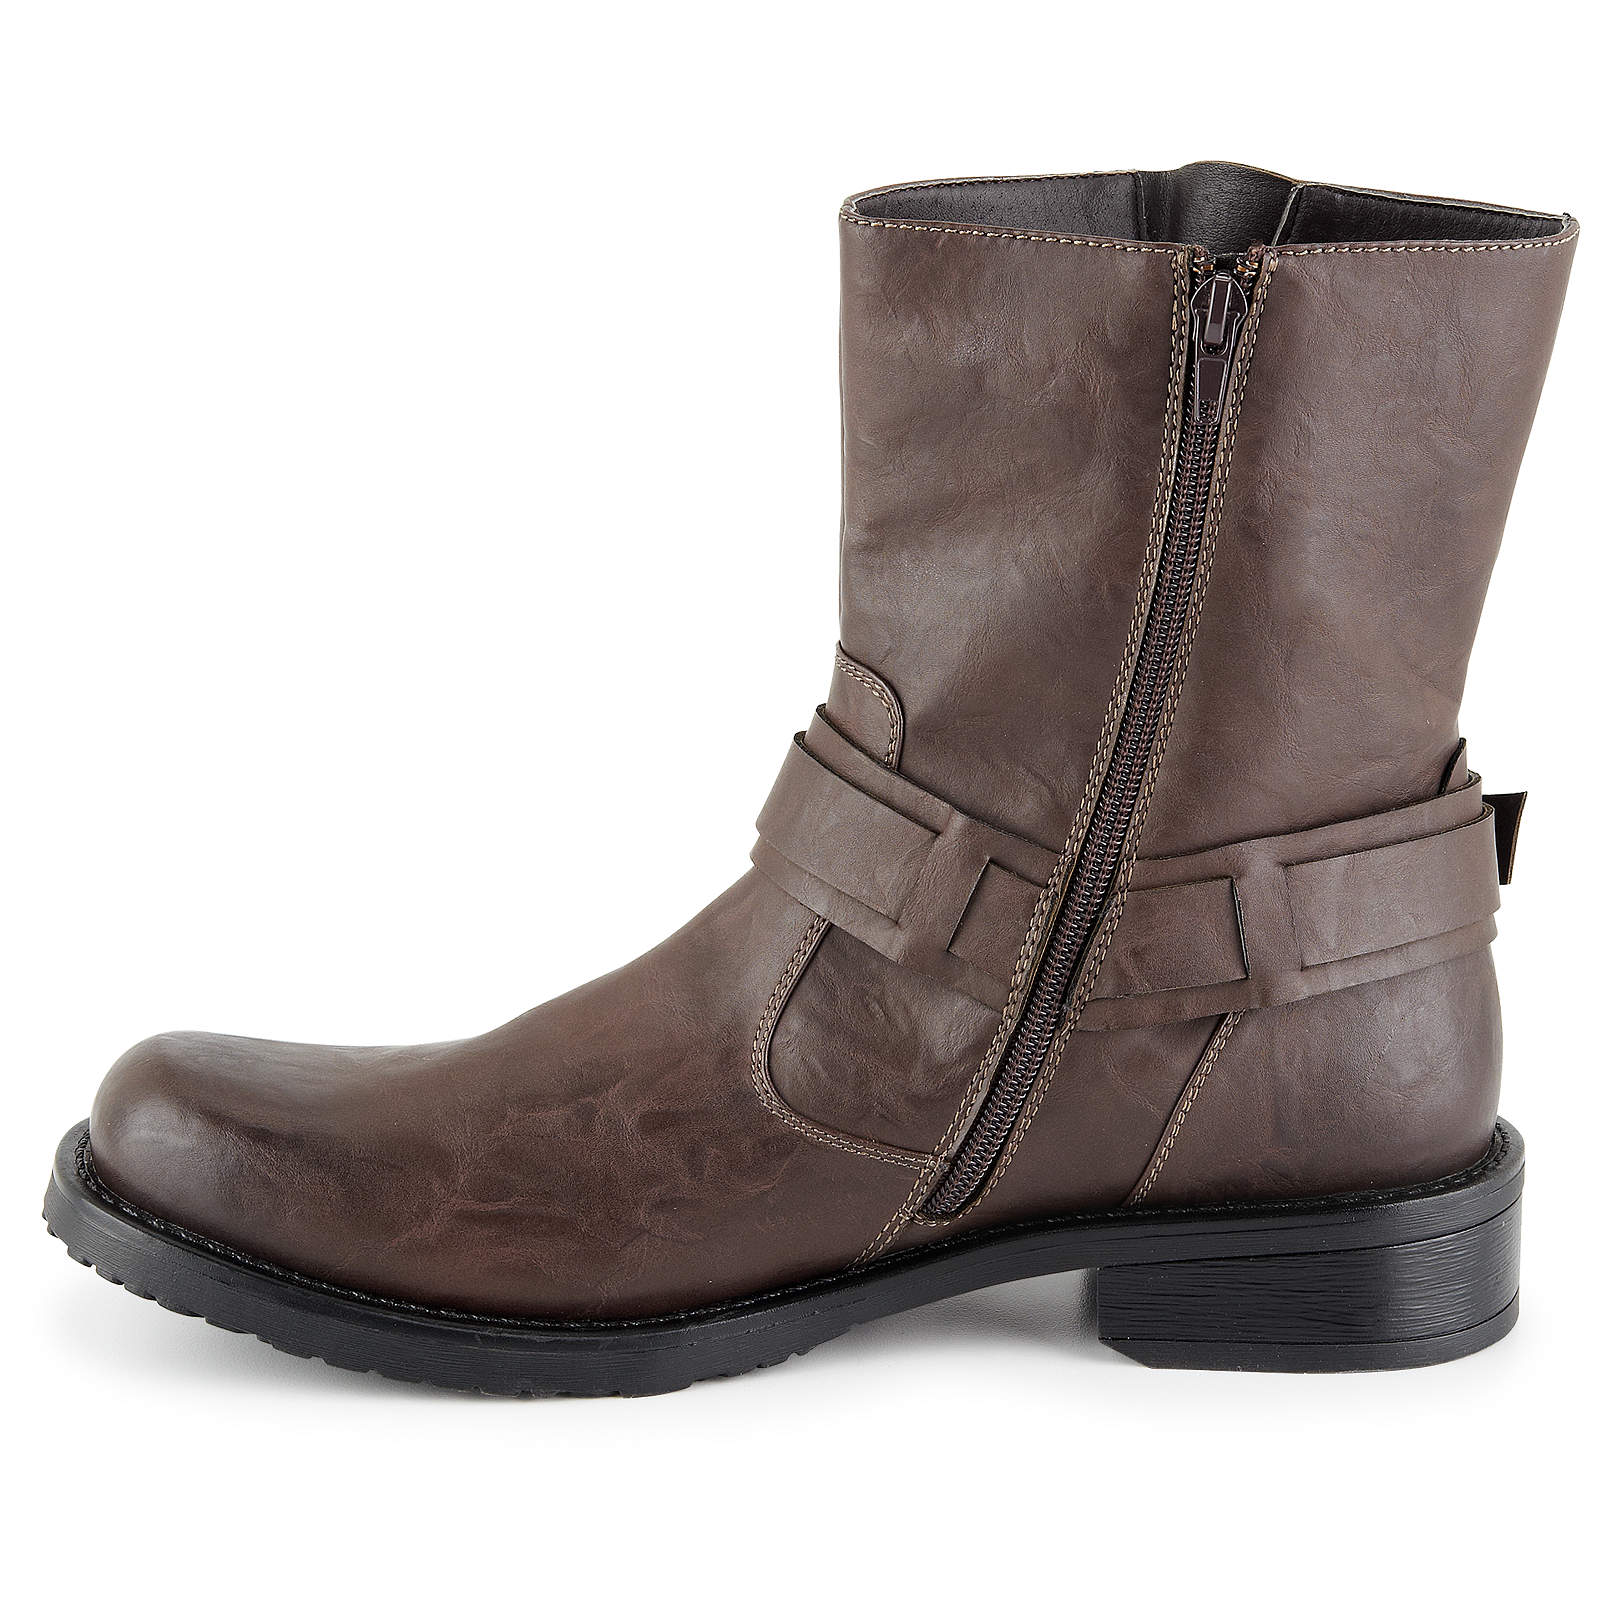 Day Five Mens Easy Rider Harness Motorcycle Boot Shoes